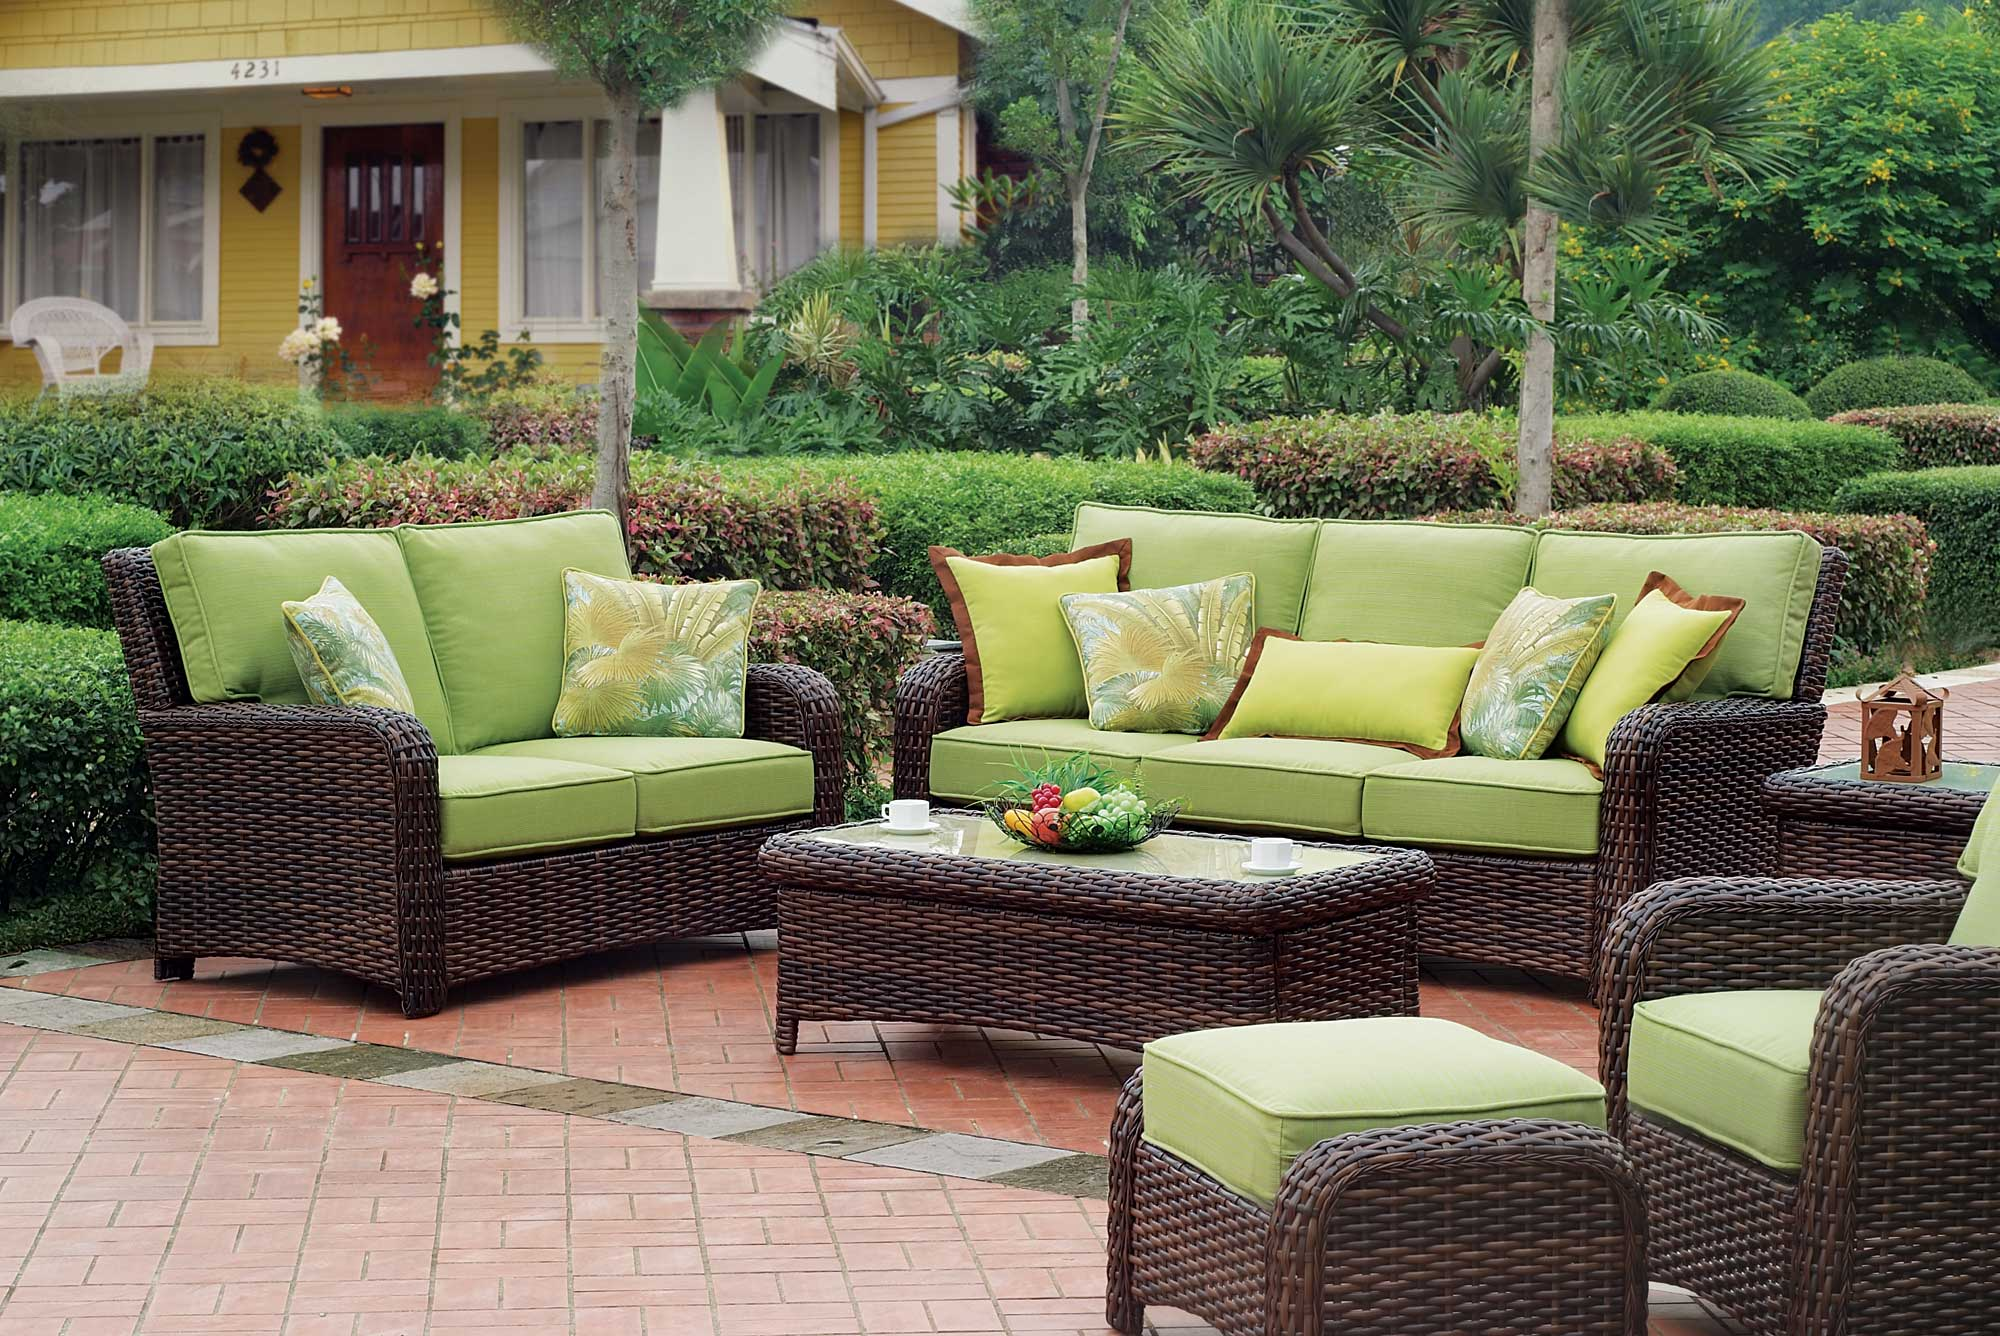 outdoor wicker furniture outdoor living: tips for keeping your rattan furniture looking new - the BYMIIZP